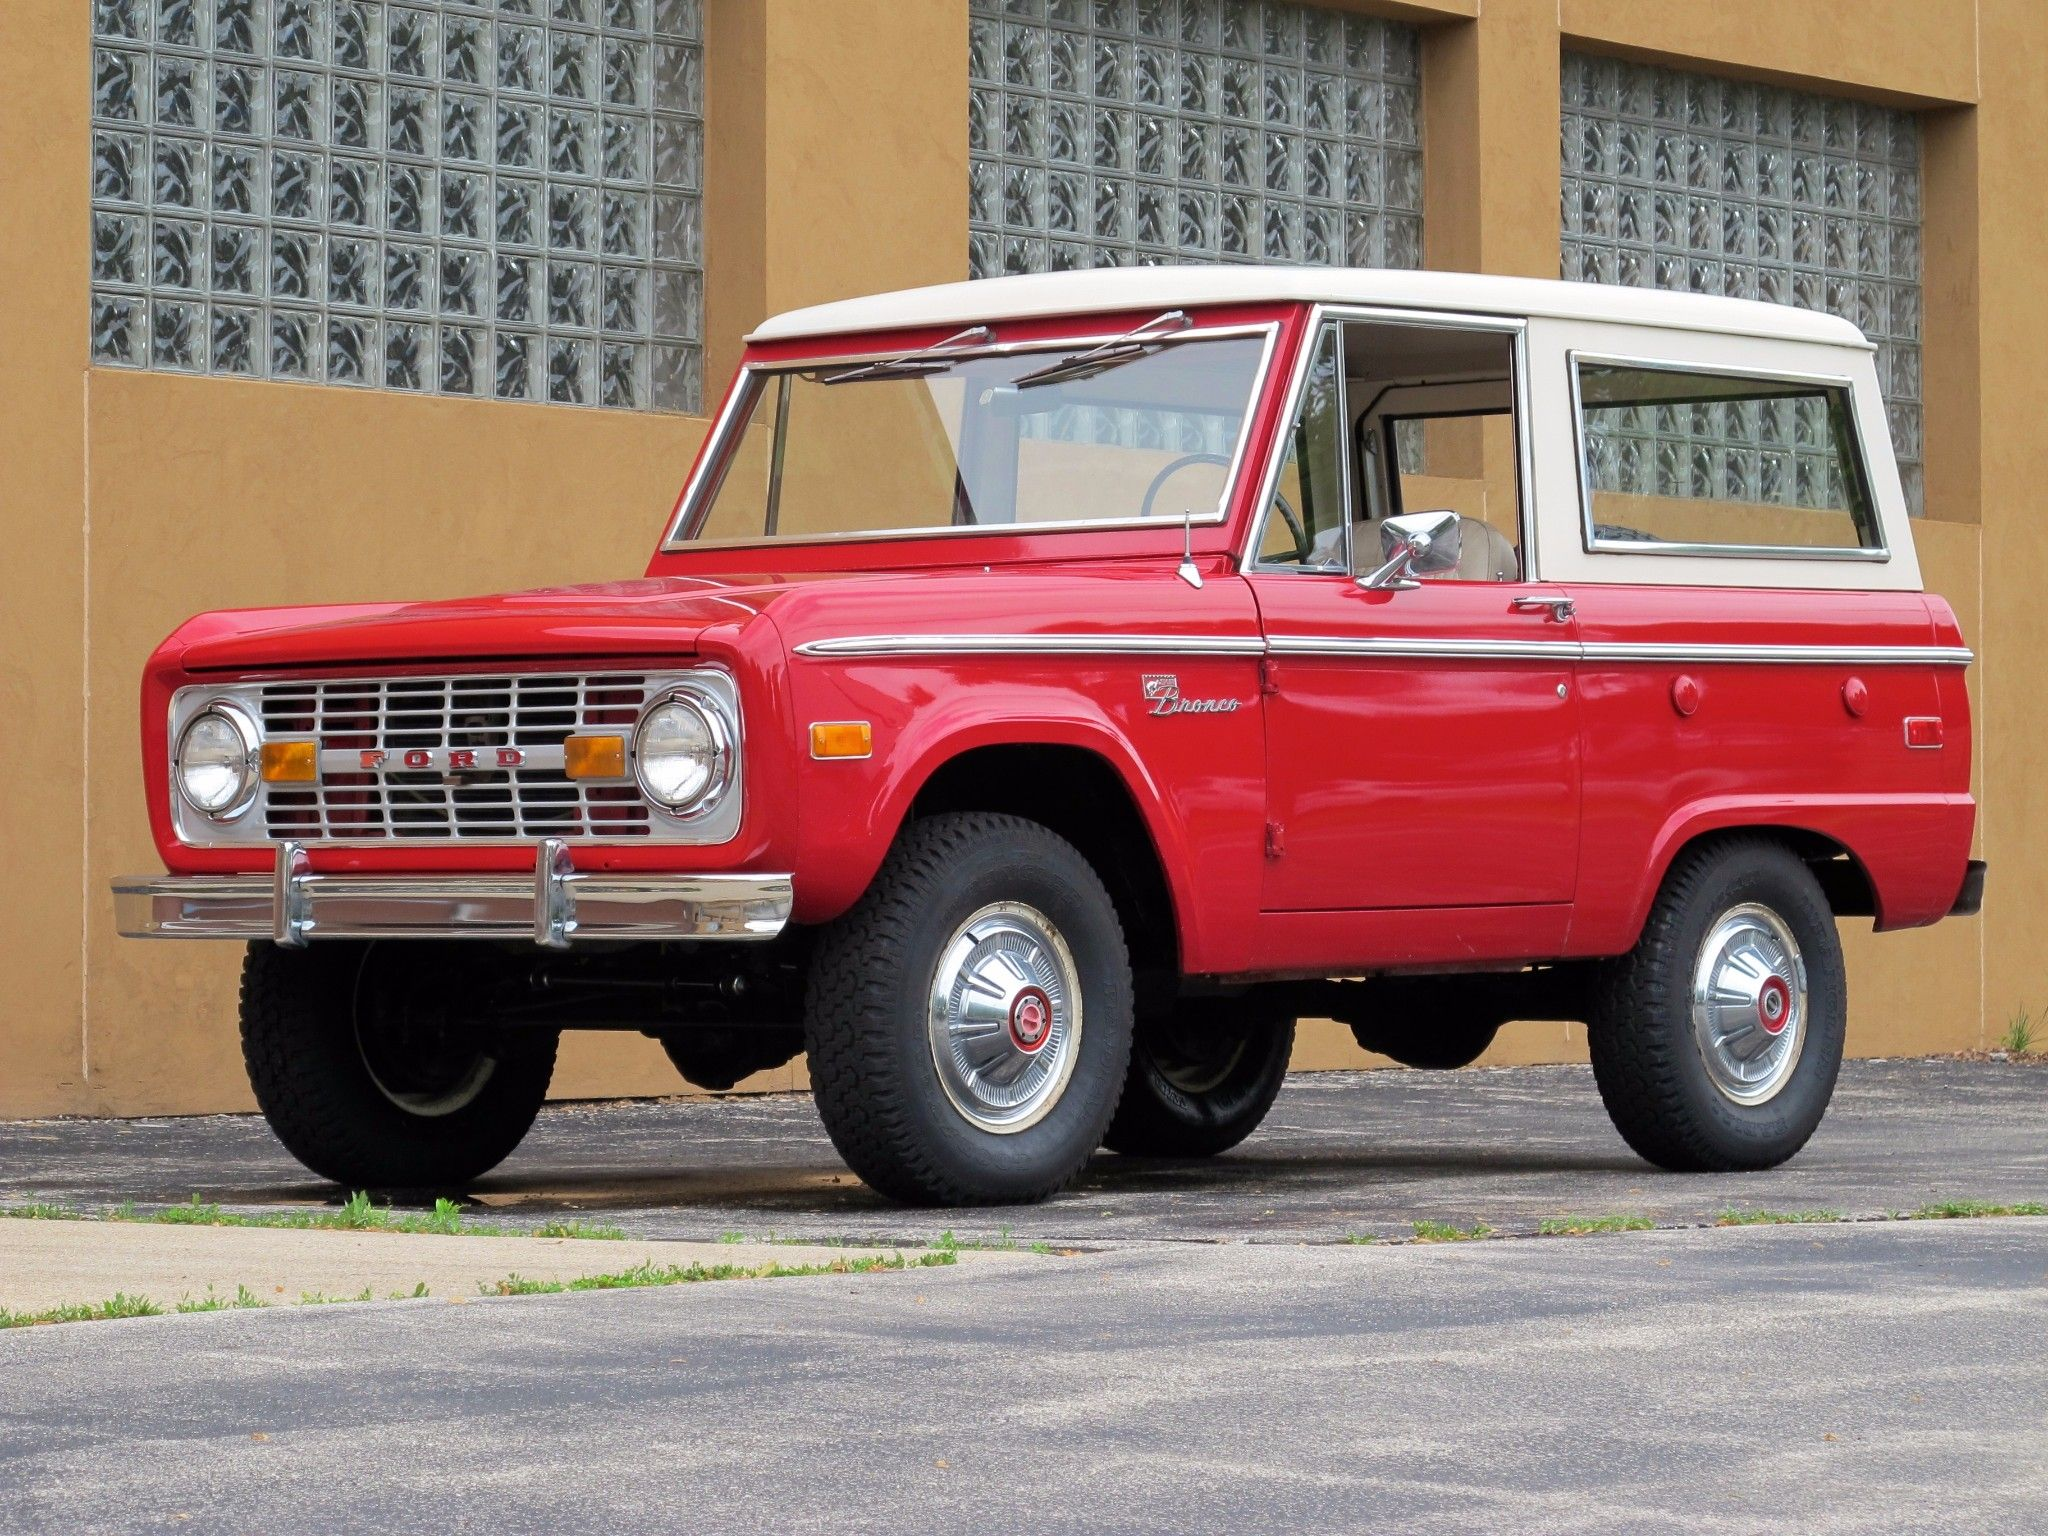 18kMile 1974 Ford Bronco Sport Survivor in 2020 Bronco